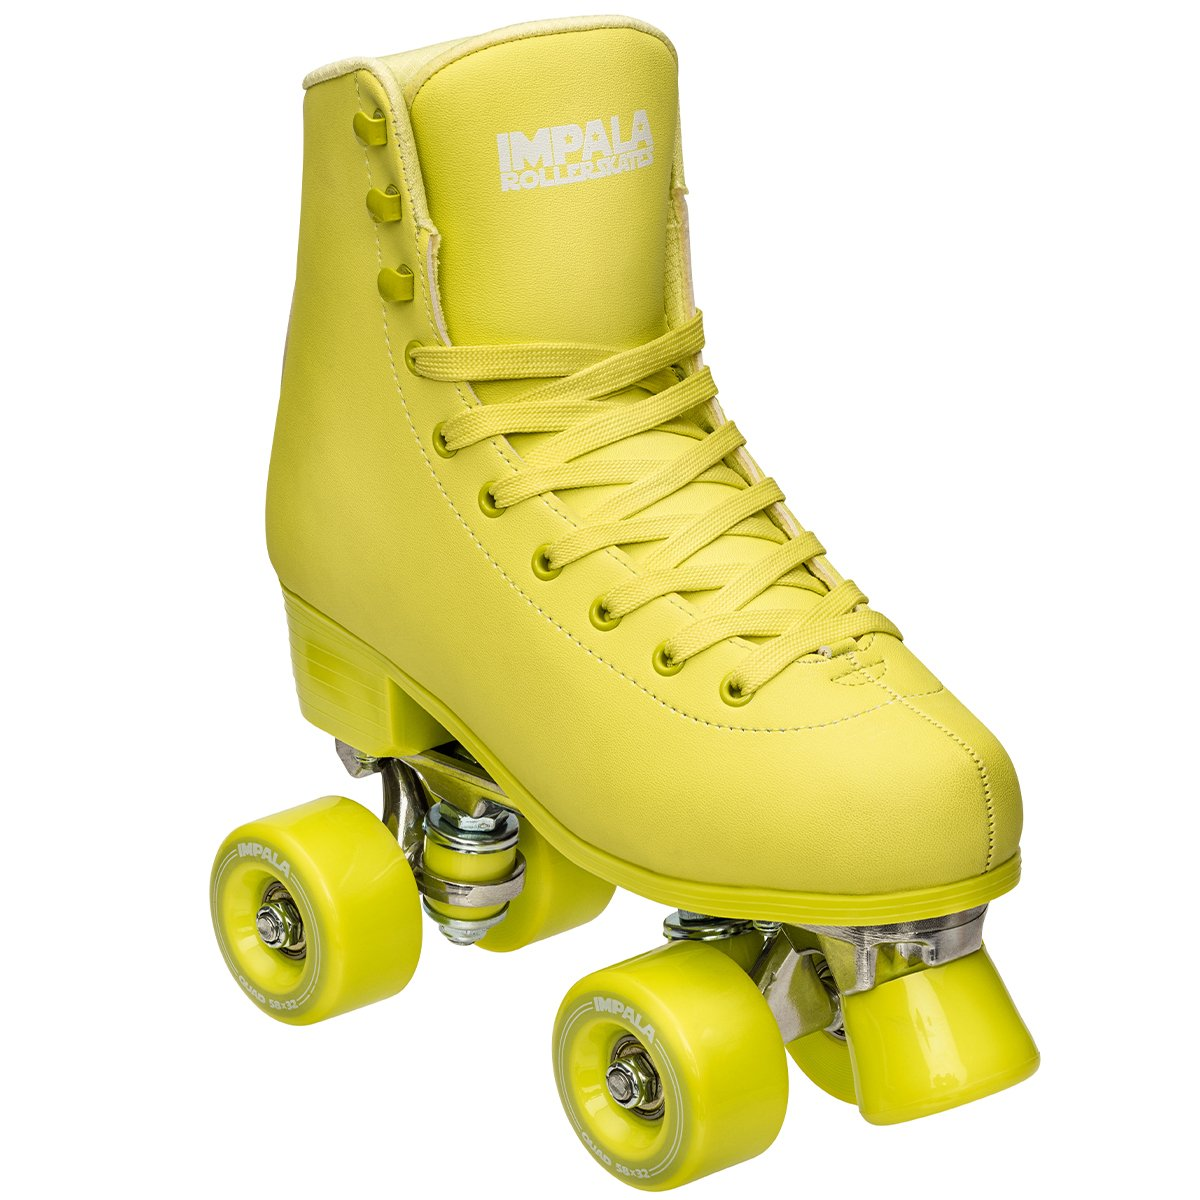 Impala Roller Skate Voltage Green - Doberman's Skate Shop - Doberman's Skate Shop